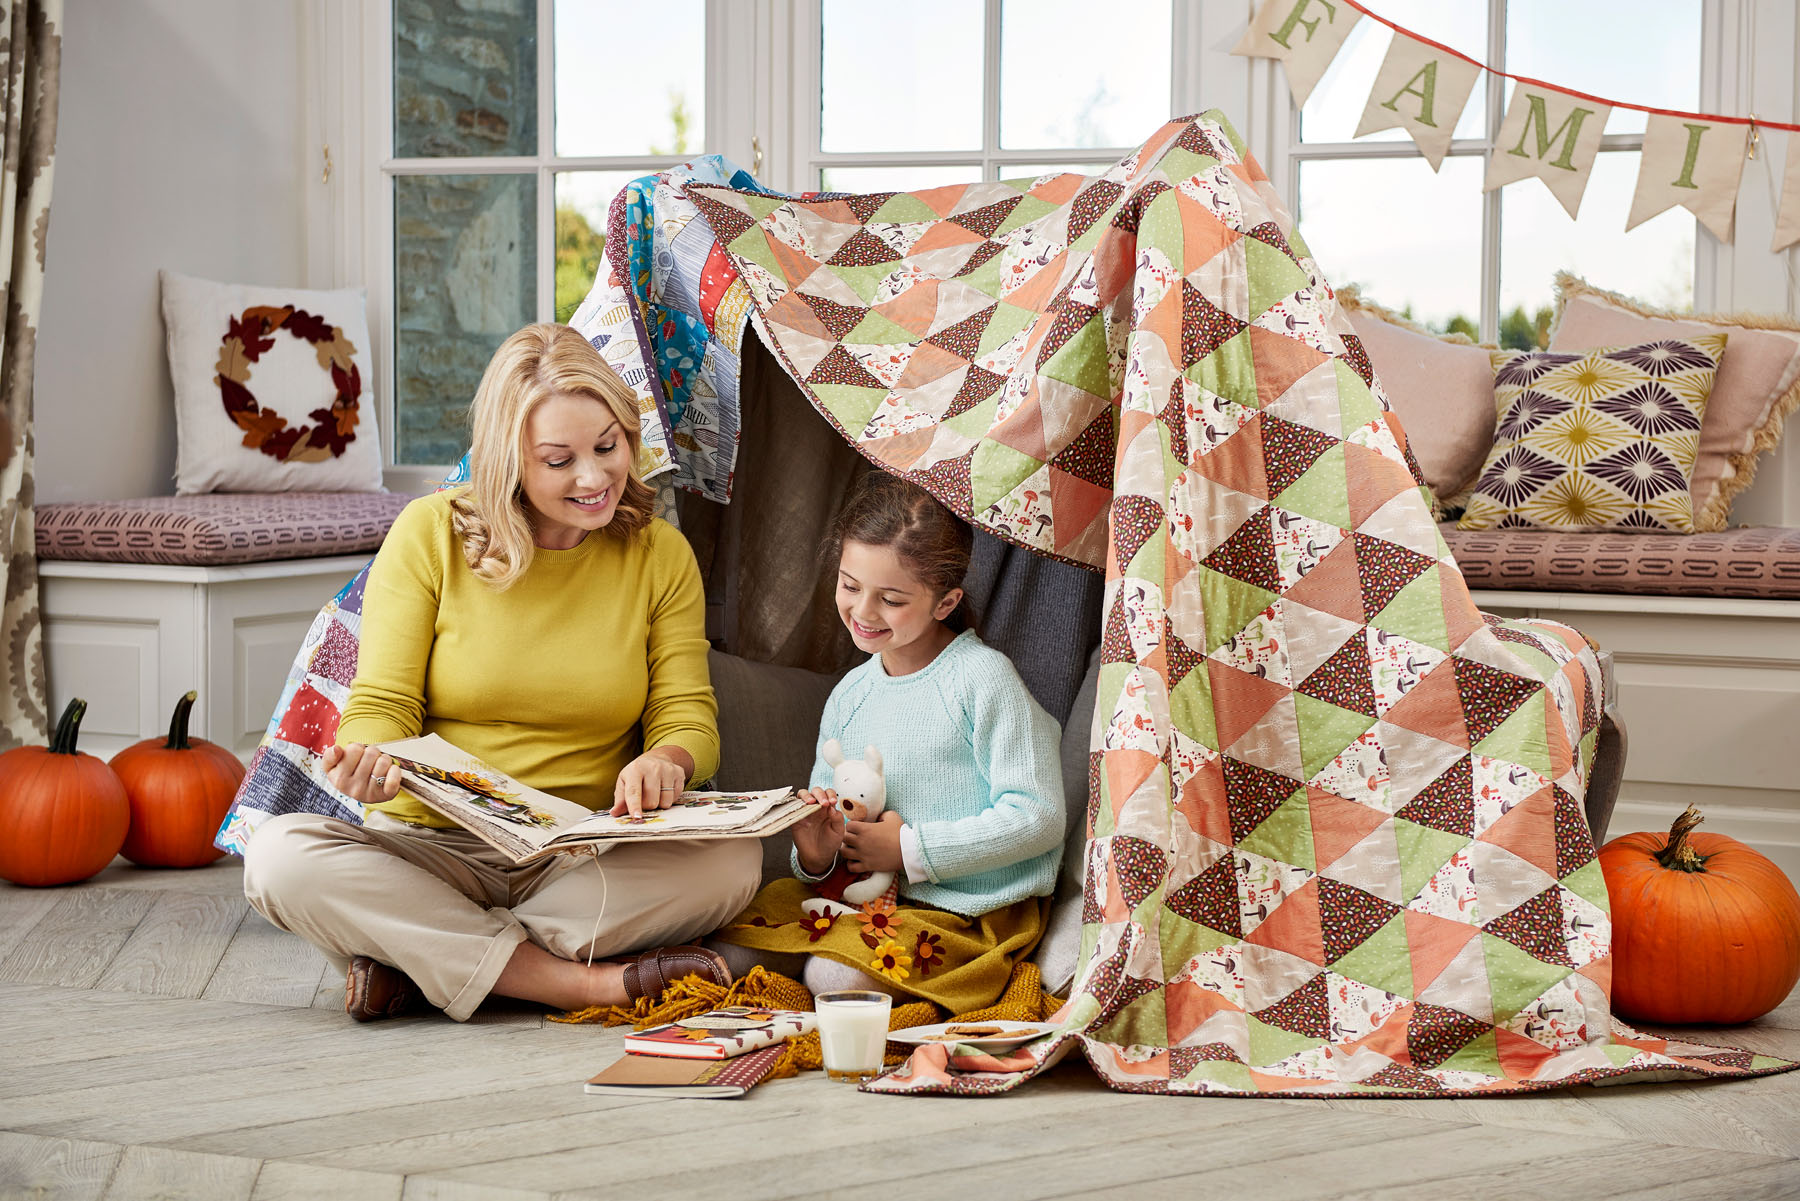 Mother and daughter in a homemade den